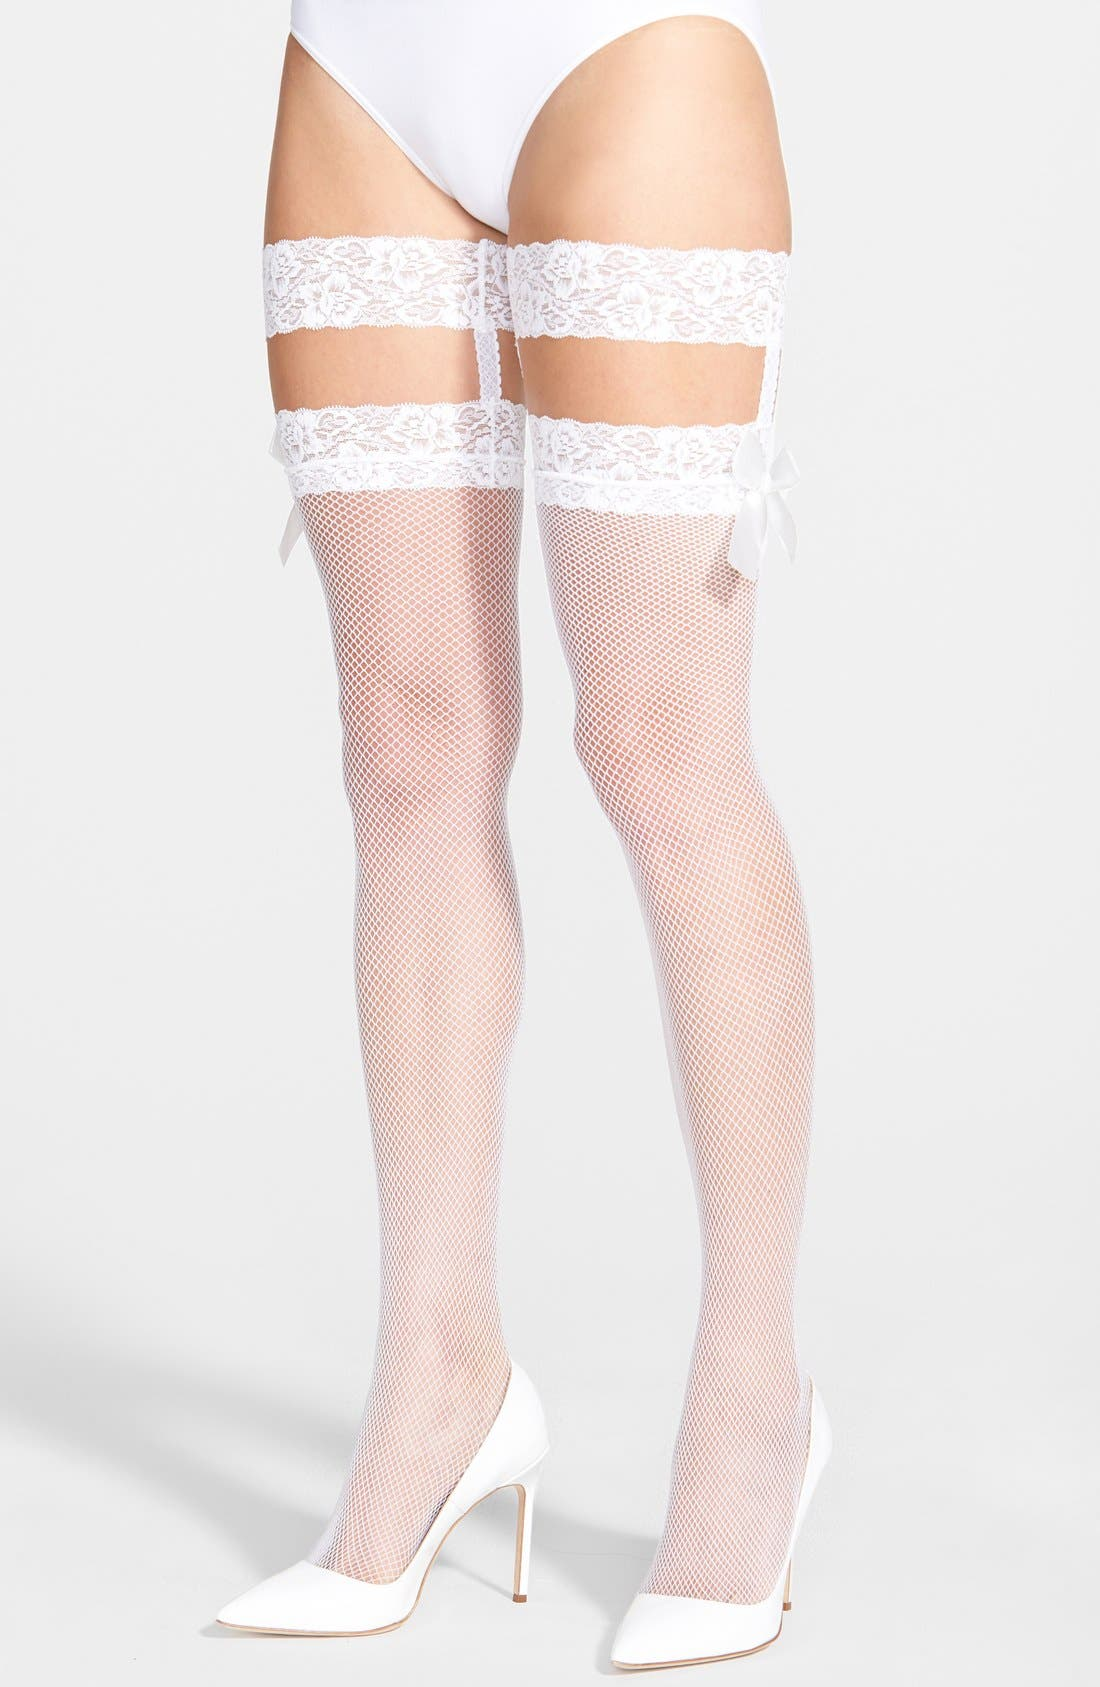 Main Image - Betsey Johnson Fishnet Thigh High Stockings with Lace Garters